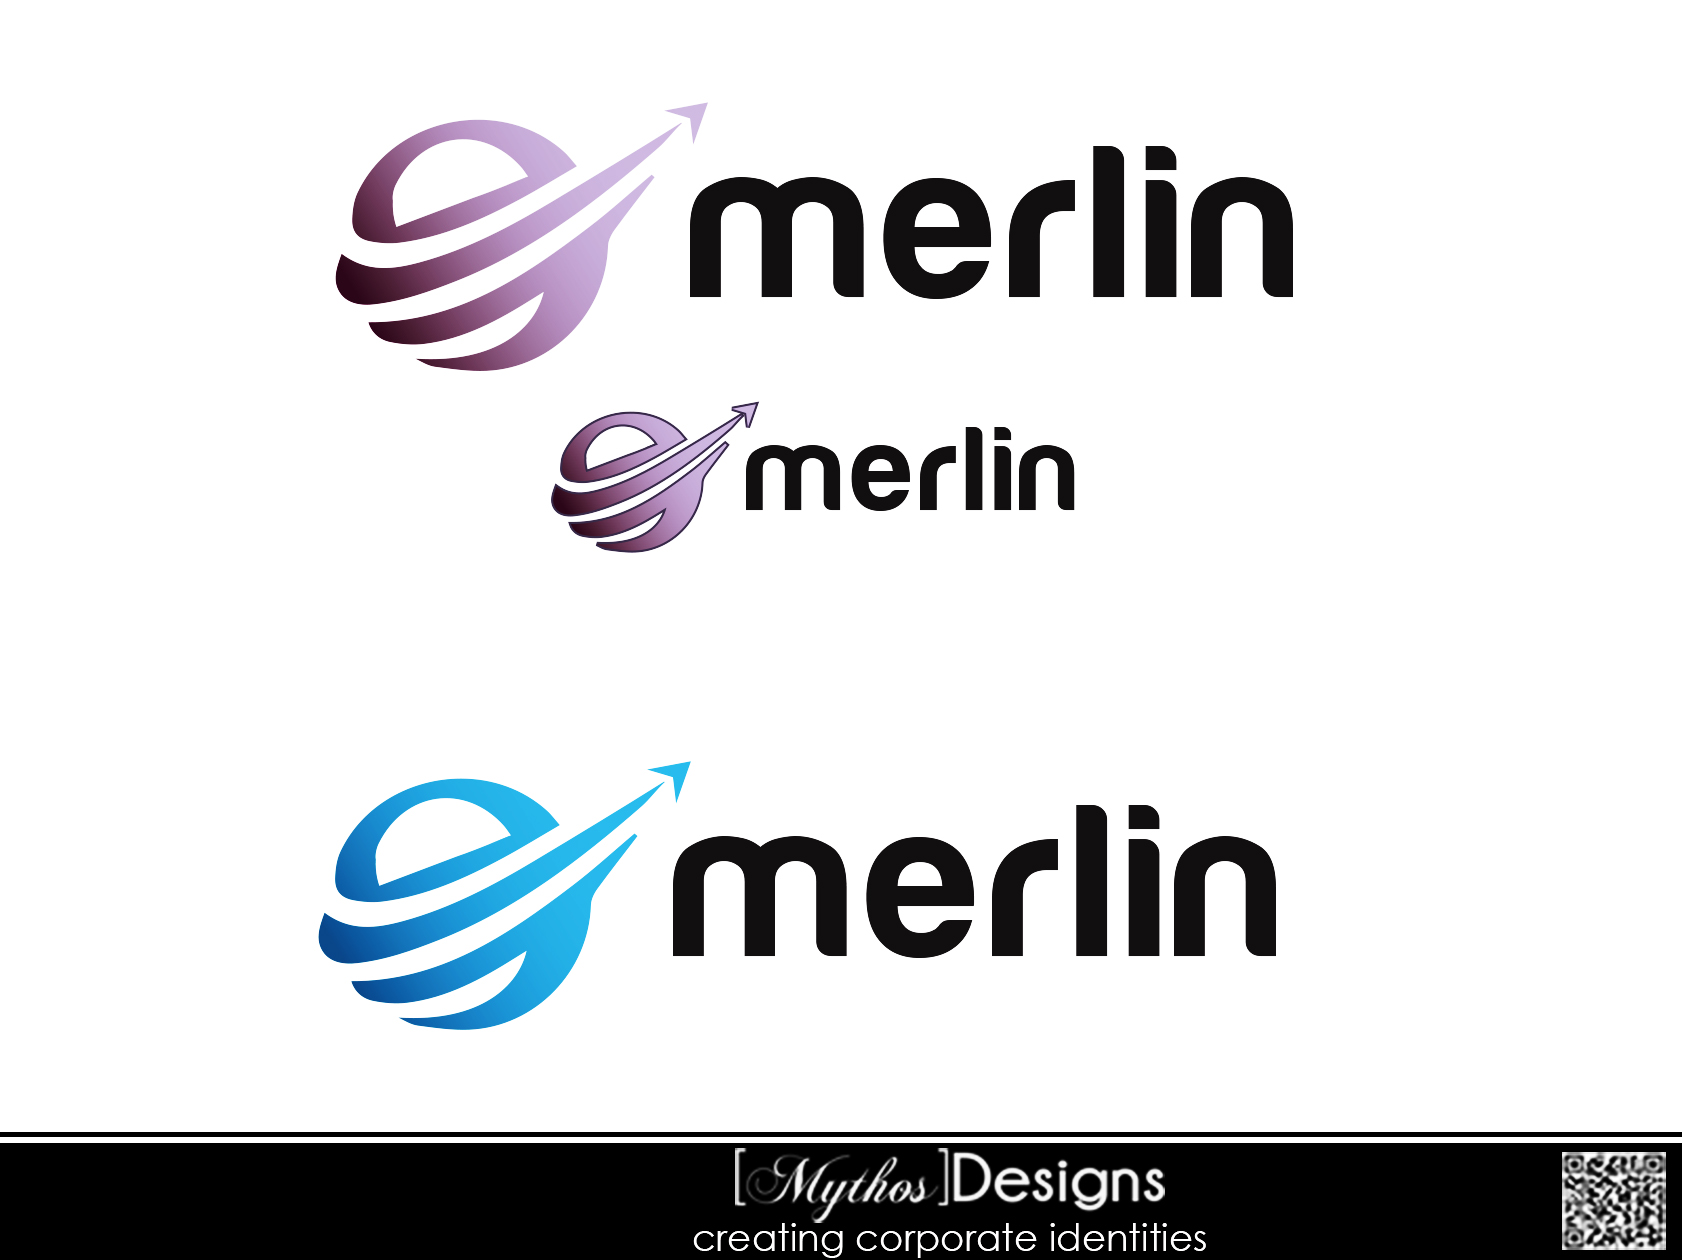 Logo Design by Mythos Designs - Entry No. 41 in the Logo Design Contest Imaginative Logo Design for Merlin.